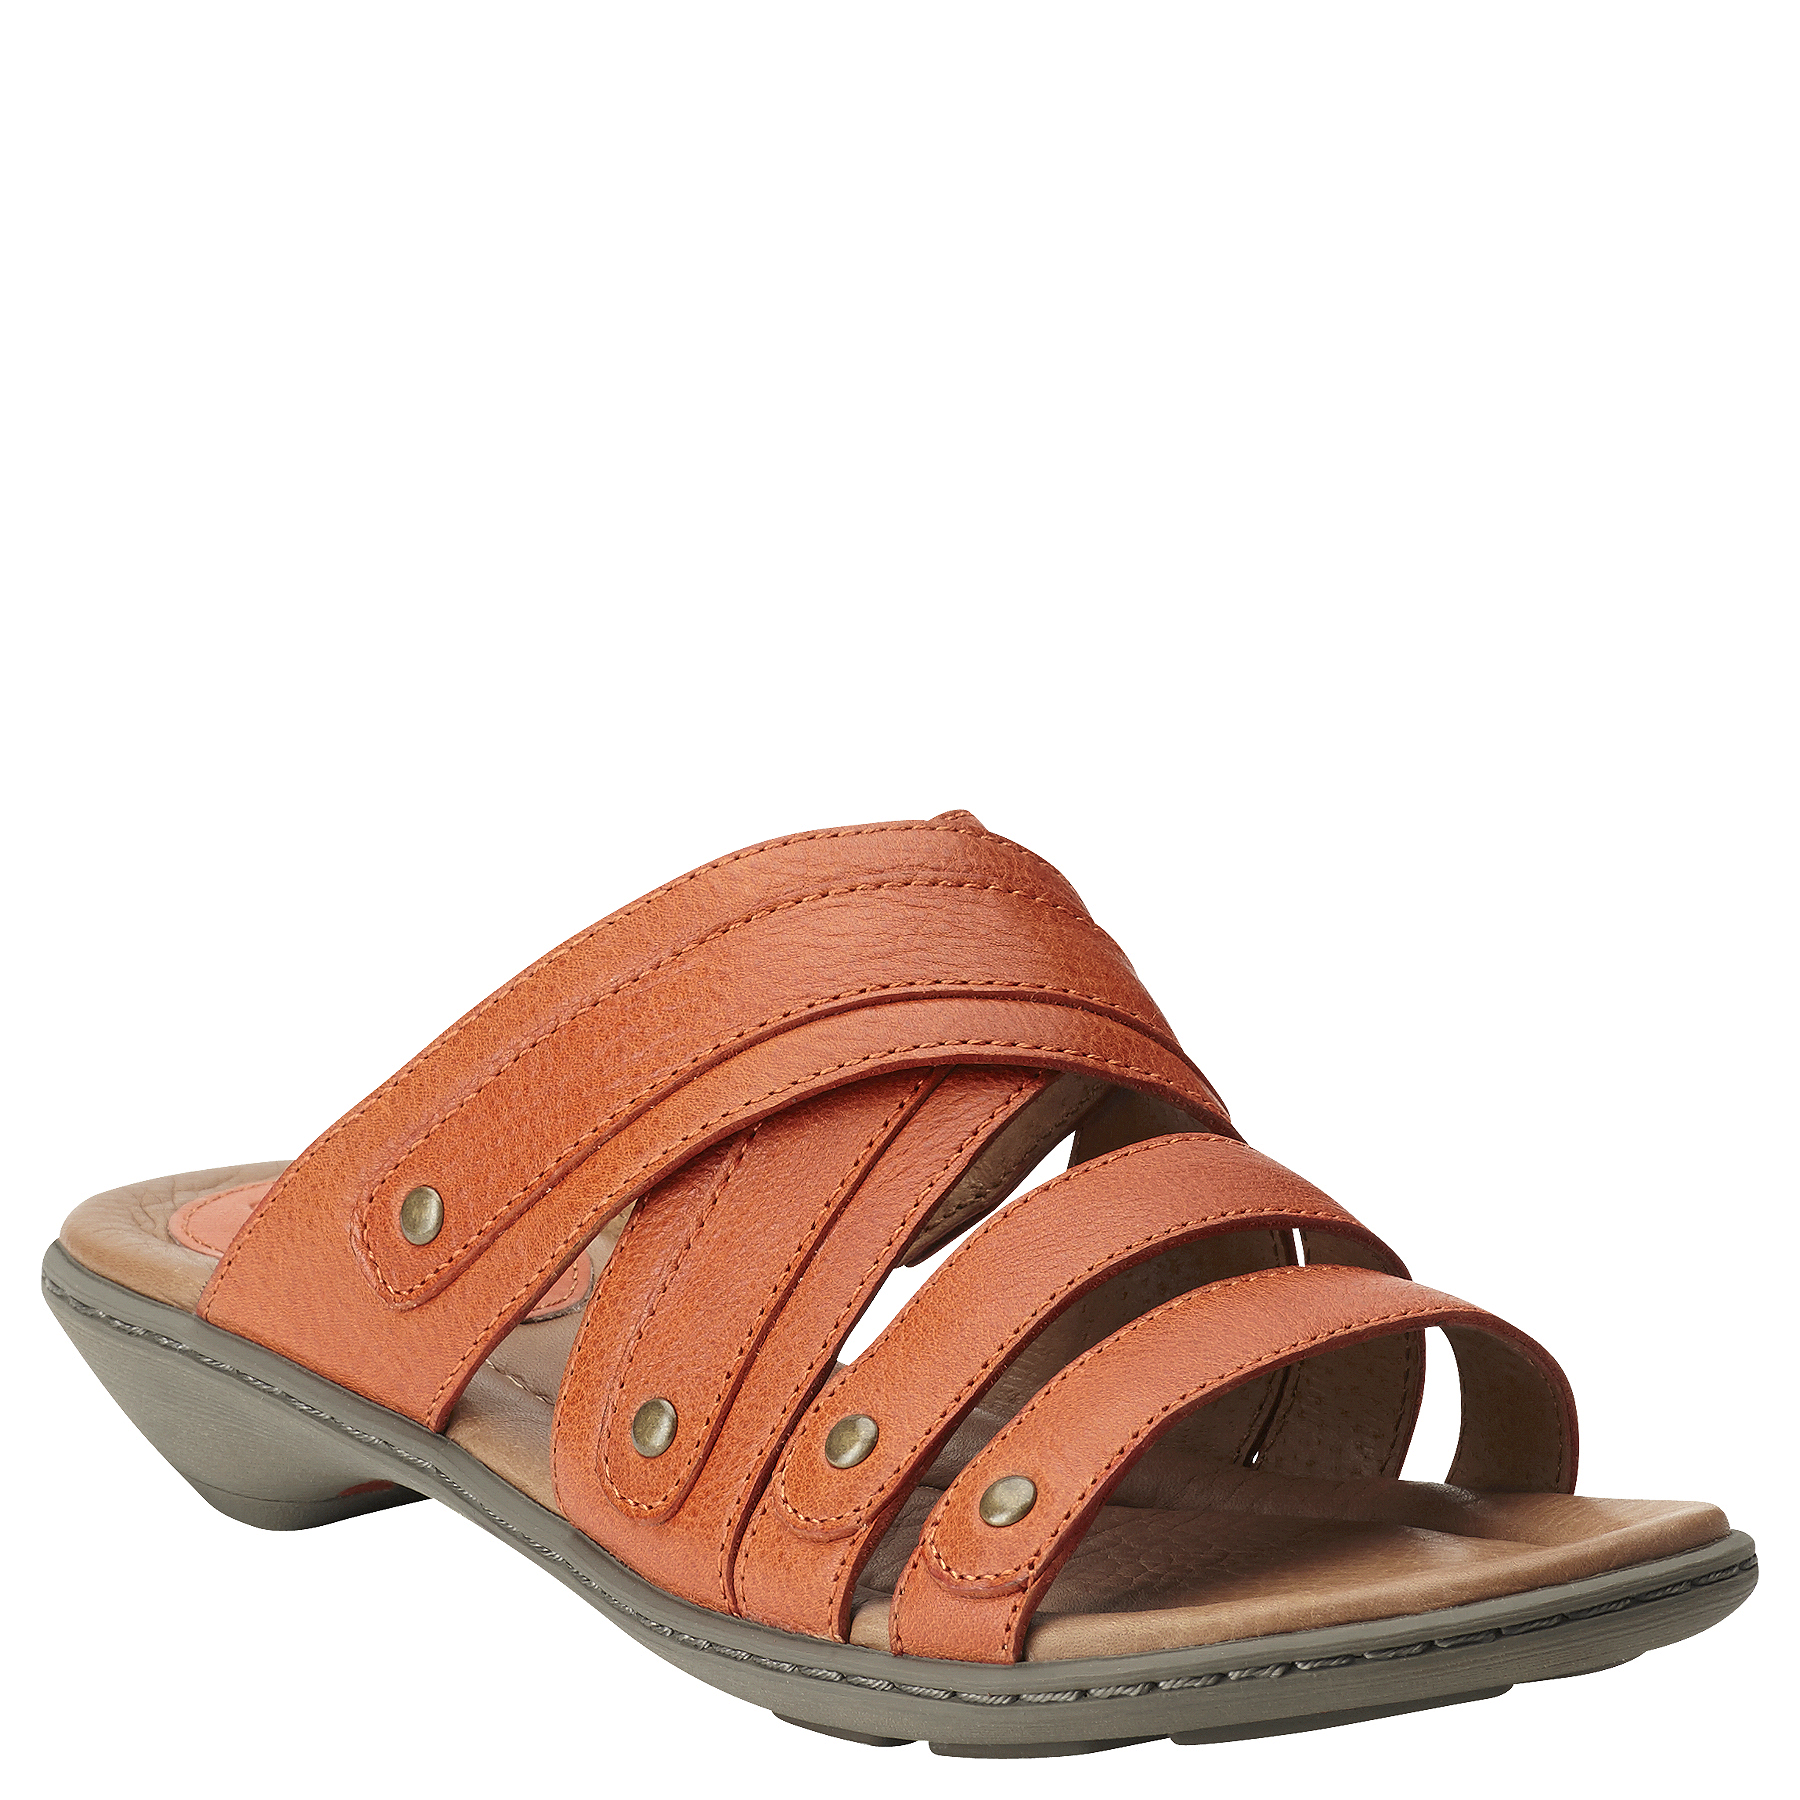 Ariat Women's Layna Sandal